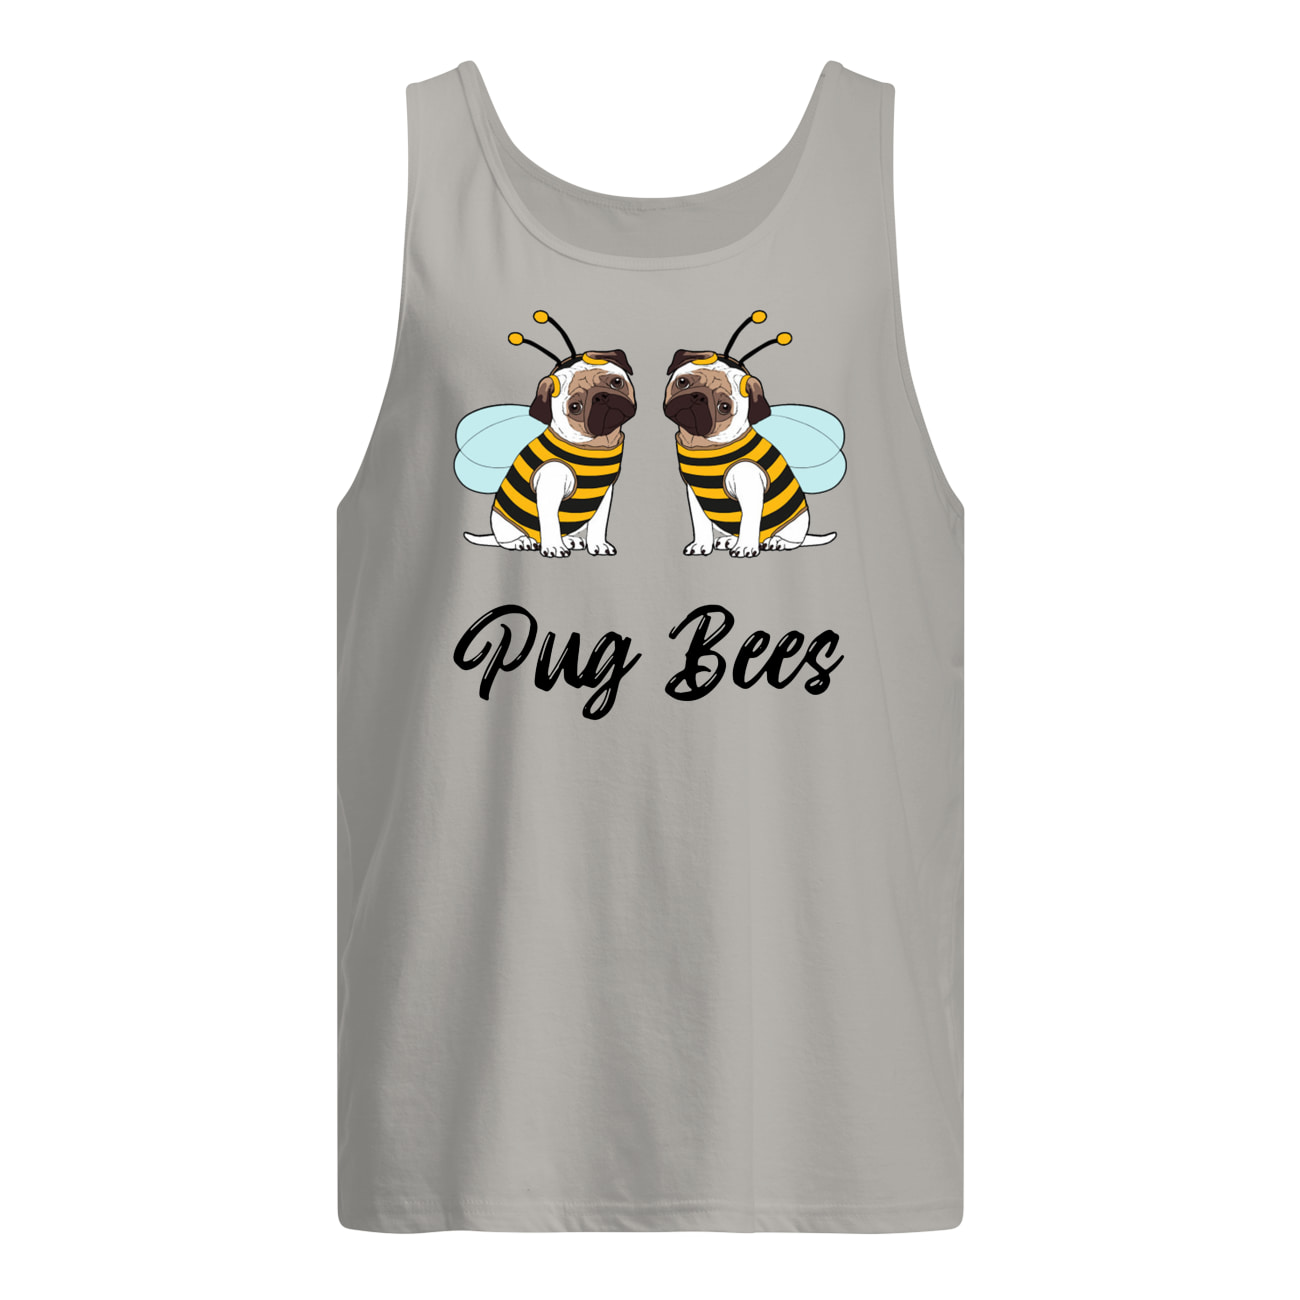 Pug bees couples tank top